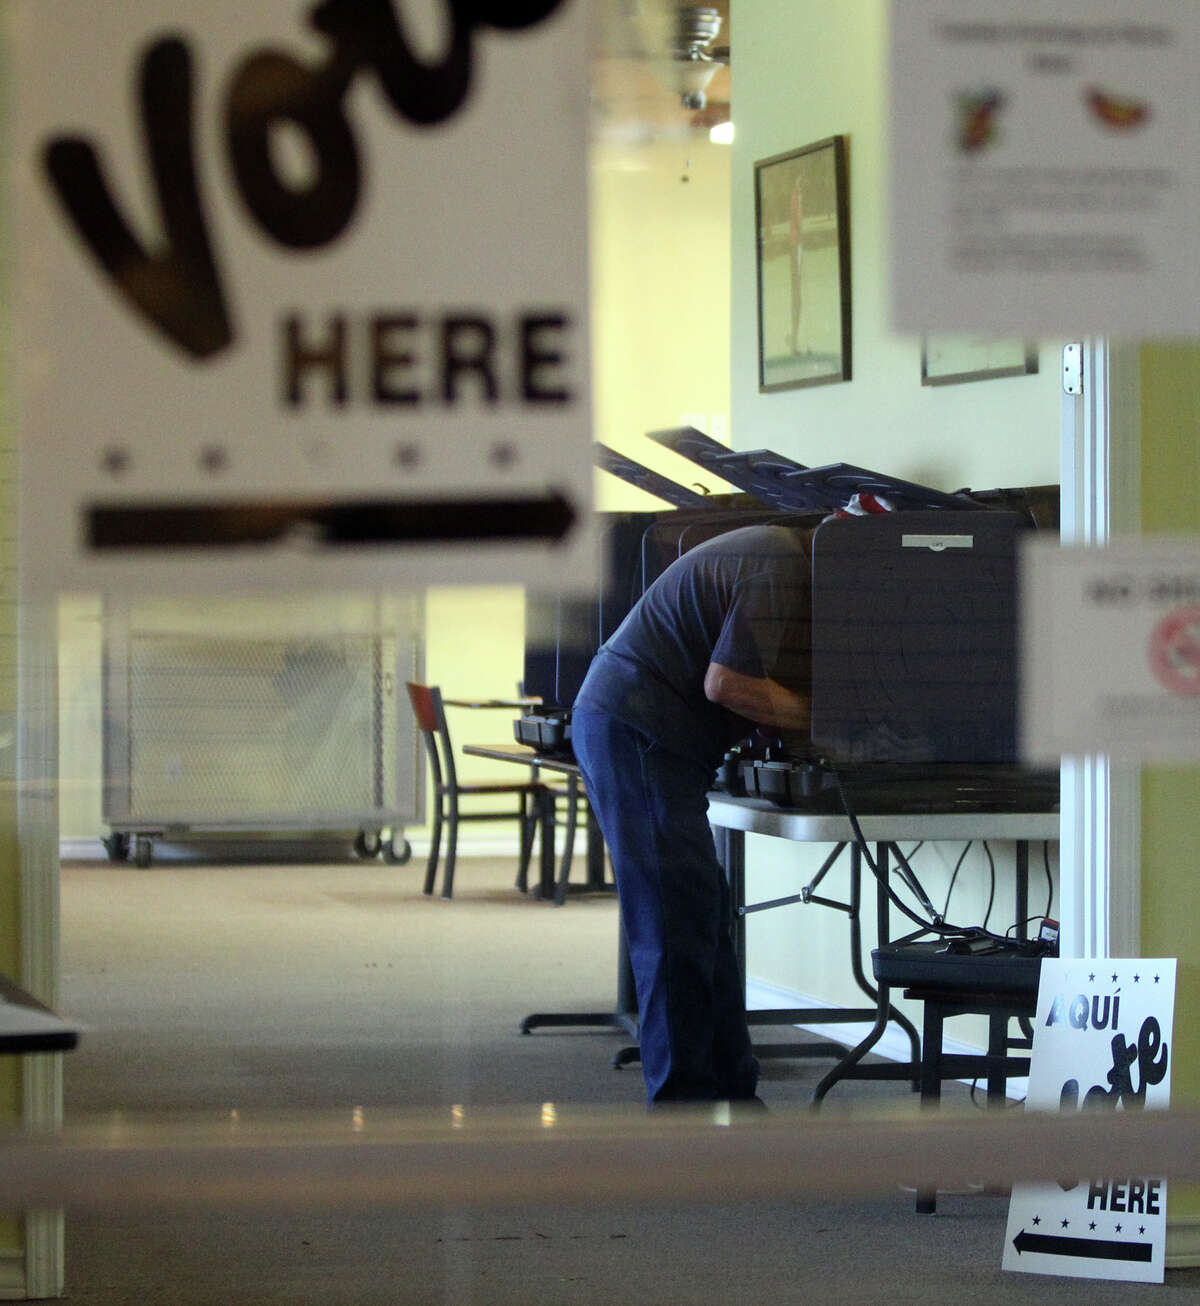 Some Bexar County voters had to wait in long lines last week, but a little knowledge of the system will go a long way toward making the process smoother. Voting early is usually easier.